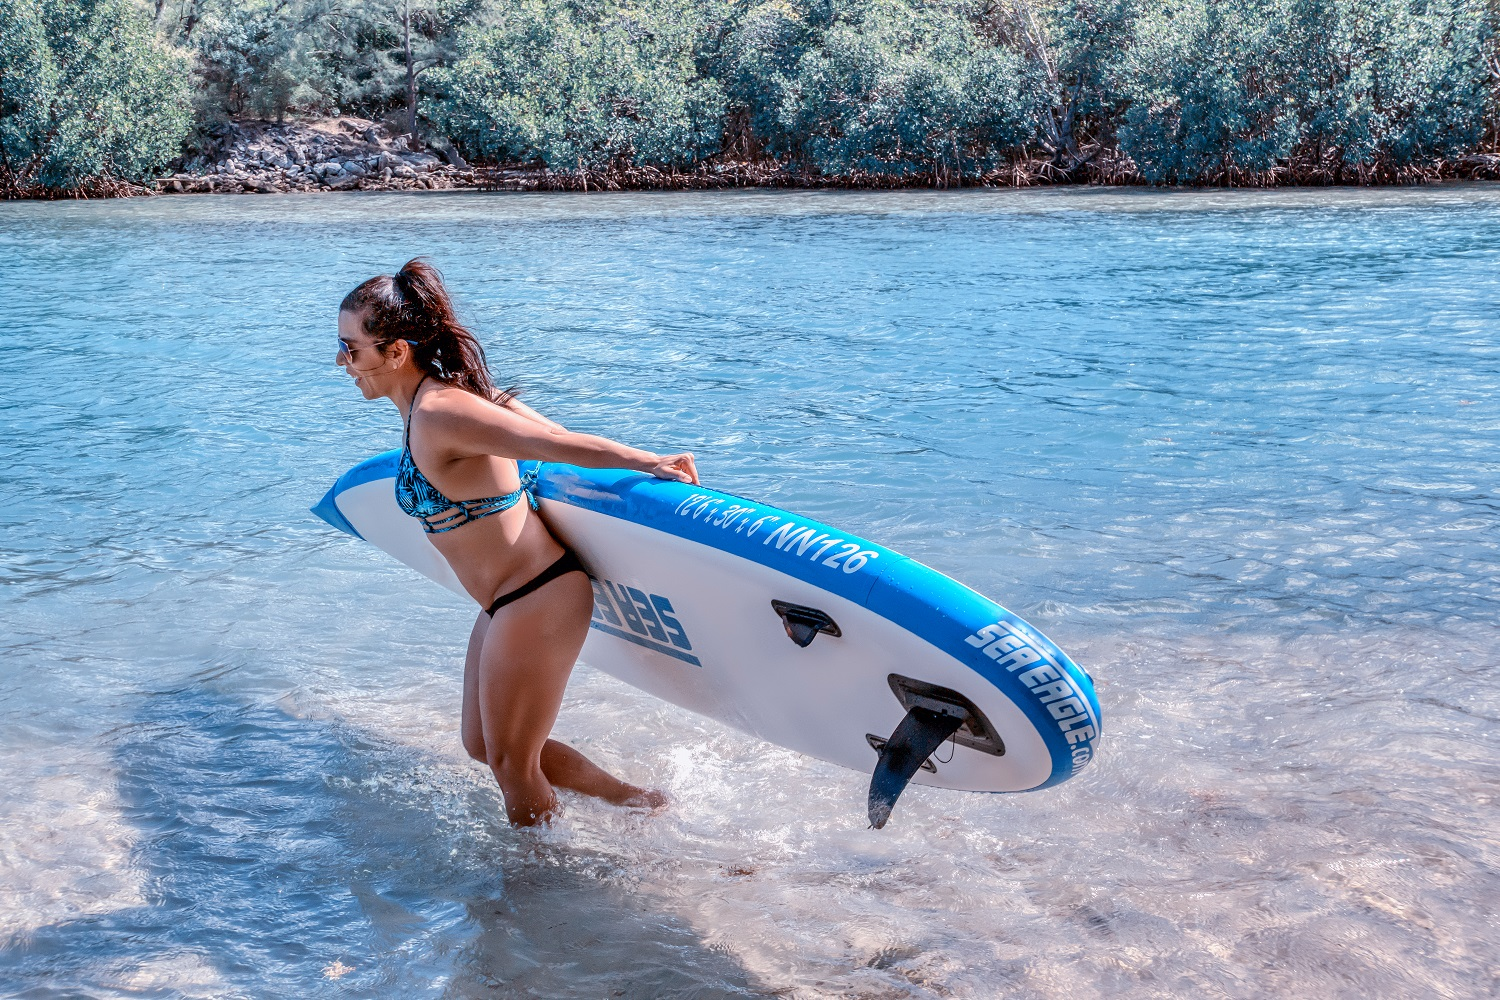 a8a66abe2771 Long Board 11: Inflatable Standup Paddleboard - Inflatable Boats 4 Less